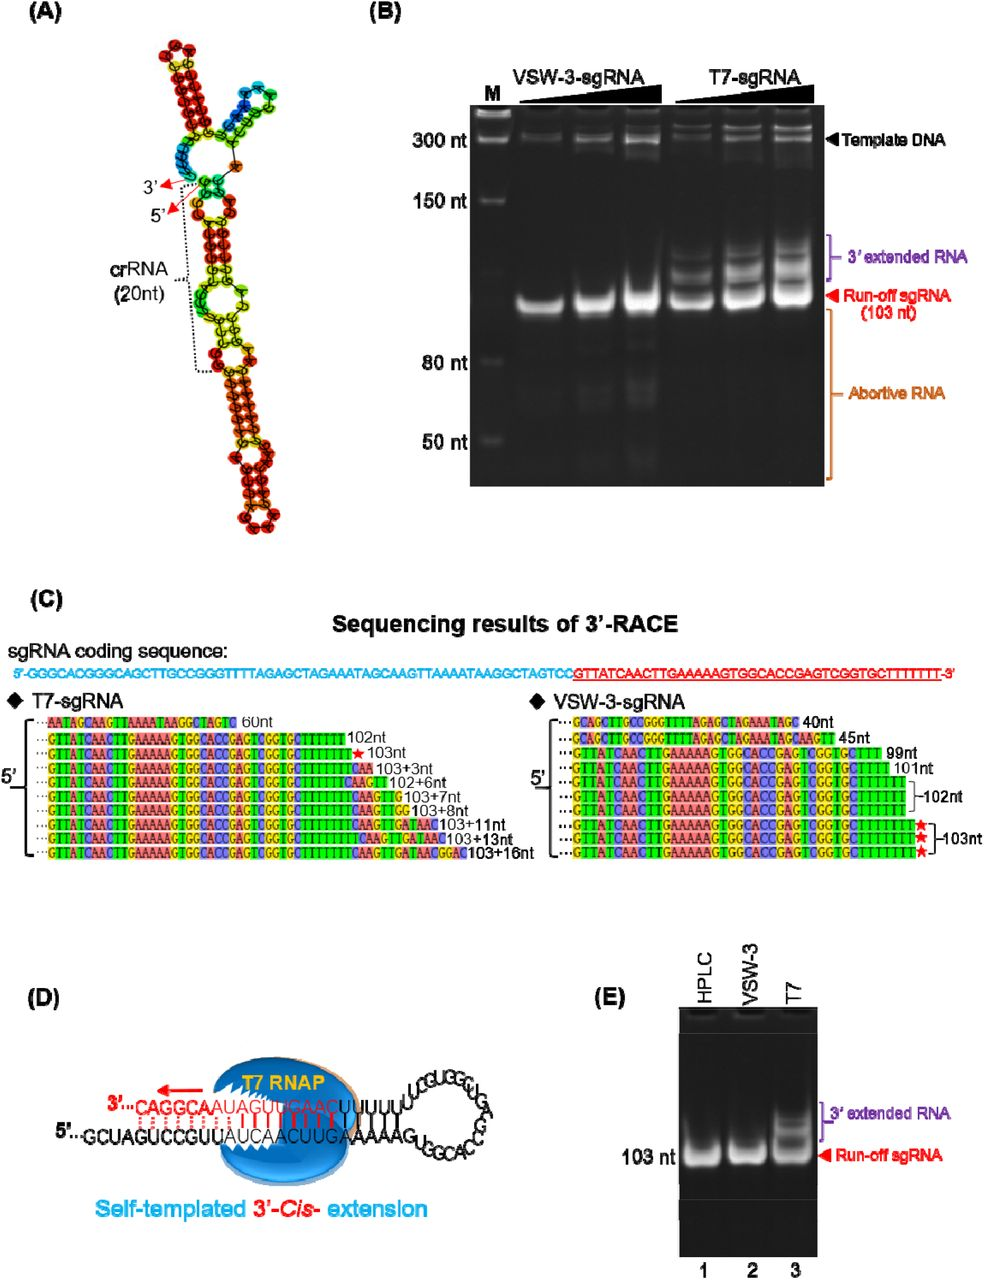 RNA 3' extension and RdRp activity of T7 and VSW-3 RNAP. (A) The secondary structure of a sgRNA predicted with RNAfold software. (B) IVT synthesis of a sgRNA (targeting eGFP) by VSW-3 and T7 RNAP. (C) 3'-RACE of the sgRNAs transcripts from T7 and VSW-3 RNAP IVT. Only the 3' region (red sequence on the top) of the full sgRNA in sequencing results was shown. The length of each sequence was noted. The sequences matching the exact run-off sgRNA (103 nt) was indicated by red stars. (D) Schematic showing the mechanism and origin (3' self-templated extension by the RdRp activity of T7 RNAP) of the 16 nt 3'-extension in T7 RNAP products as in (C) . (E) T7 but not VSW-3 RNAP retains the RdRp activity to extend purified sgRNA (with terminal primer/template structure).